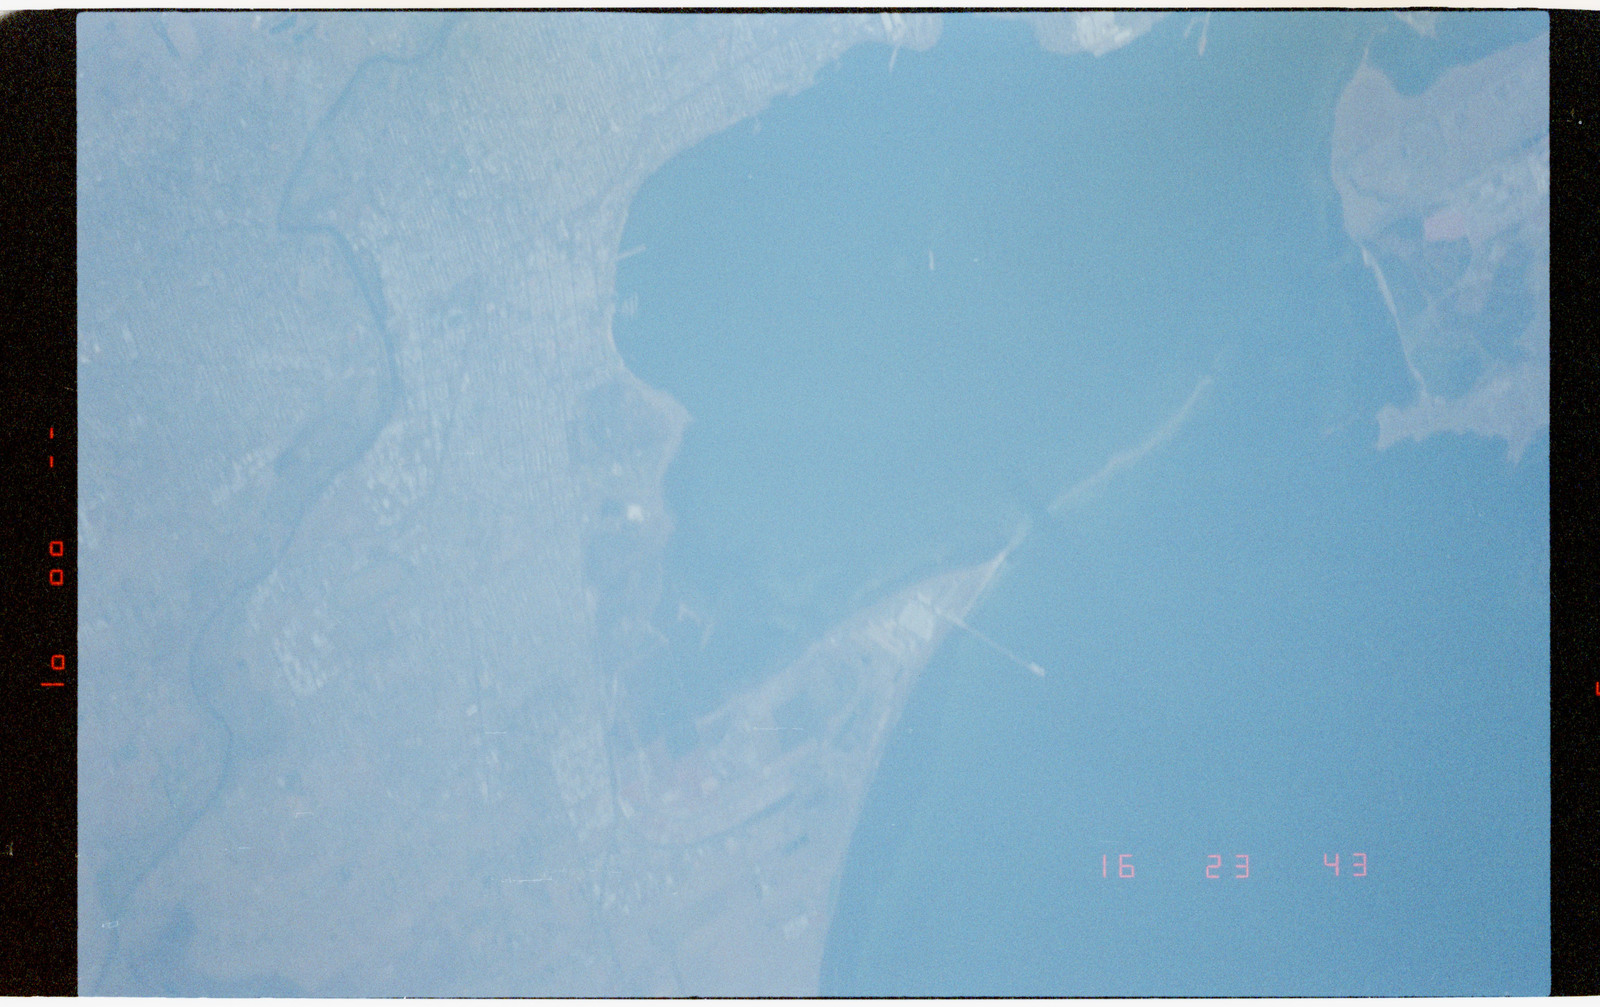 STS056-38-013 - STS-056 - Out of focus Earth observations views of Geelong and Corio Bay, Australia